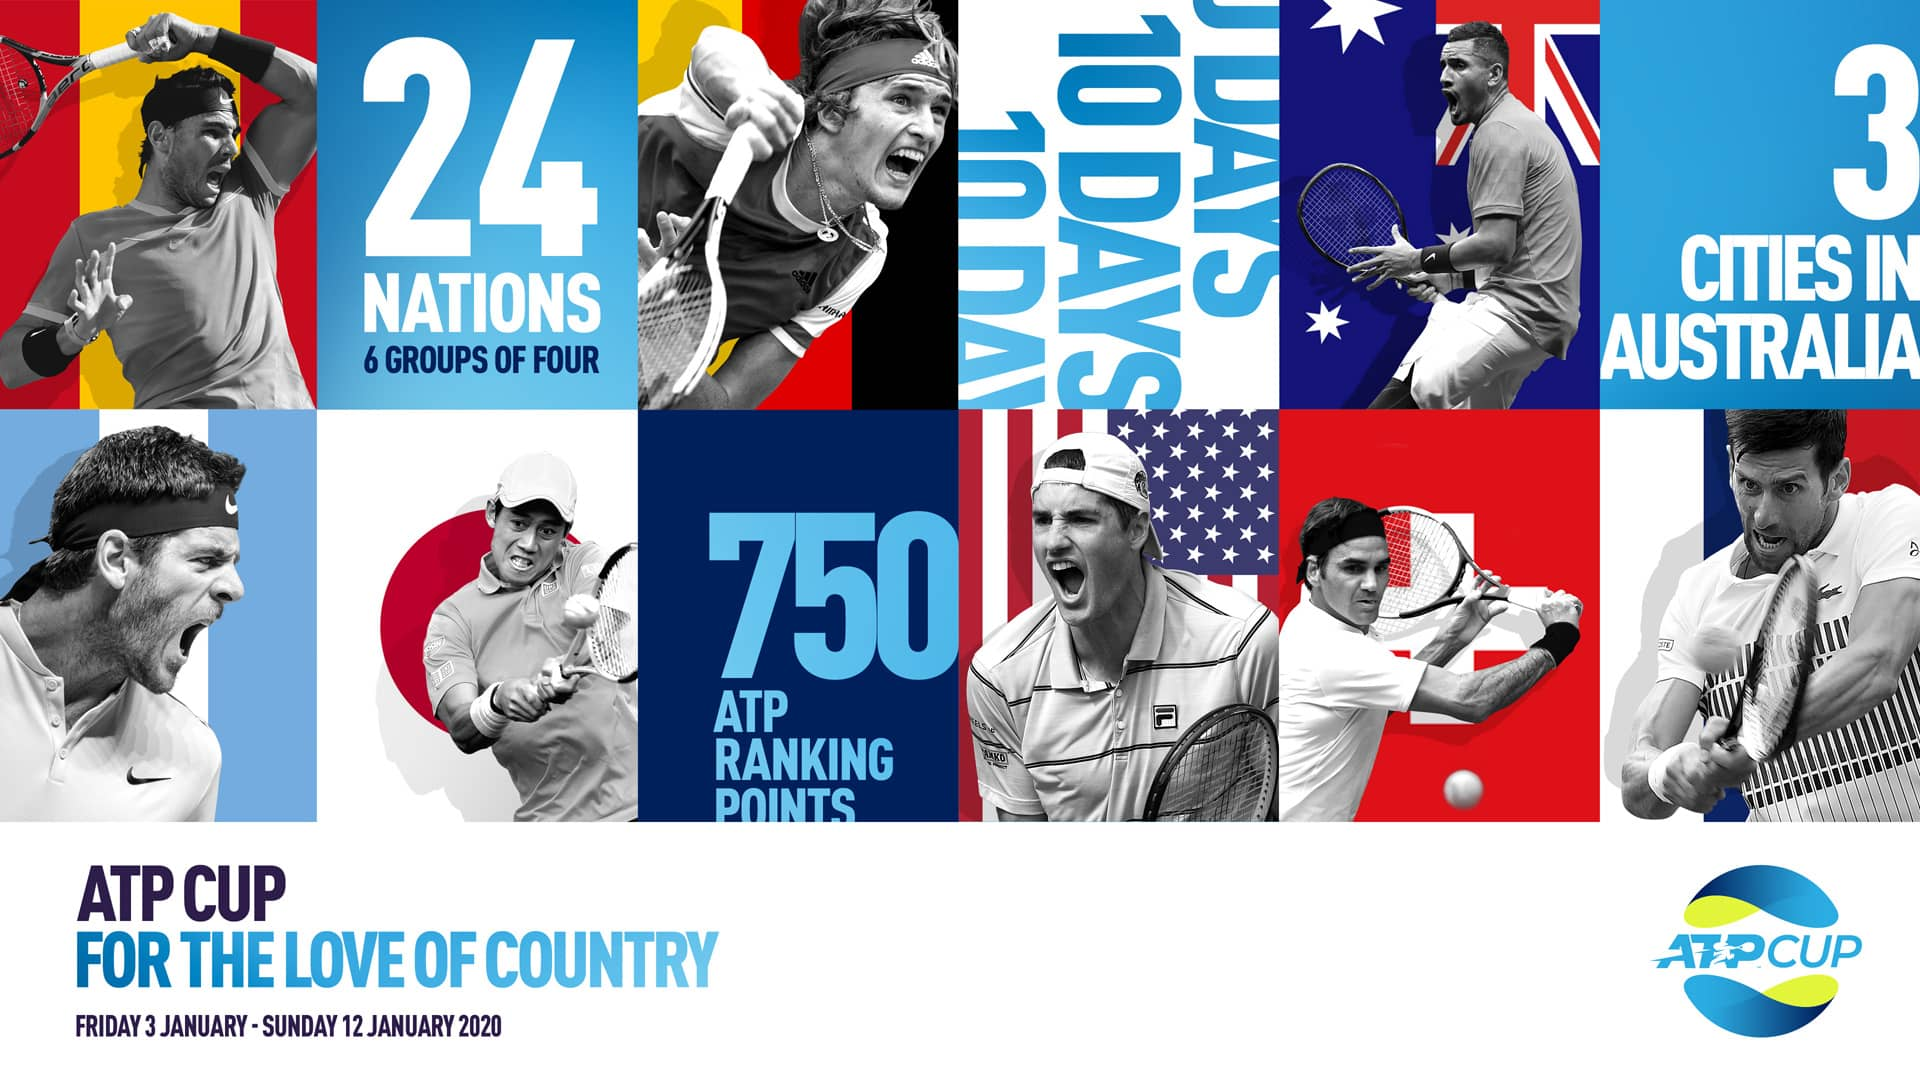 ATP Cup poster